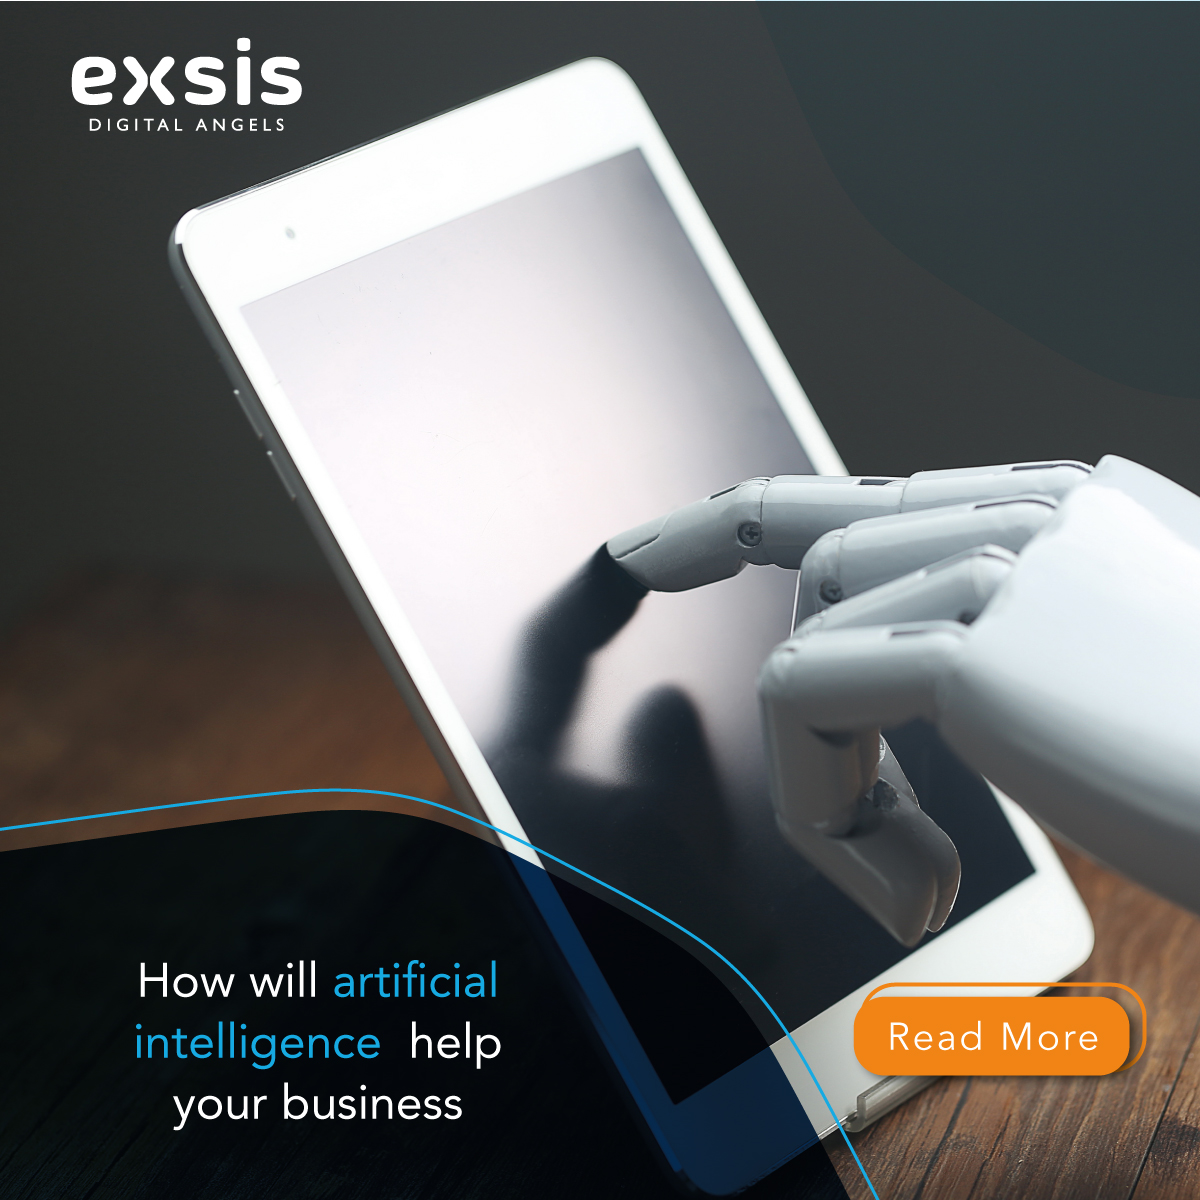 test Twitter Media - Artificial intelligence as an instrument to improve your business. The benefits of applying artificial intelligence in the business world. 🦾🤖⚙   Read more 👉  https://t.co/DZSbSPSvF5   #exsis #artificialintelligence #newera #companys #innovation #digitalangels https://t.co/qLaYoZcb34